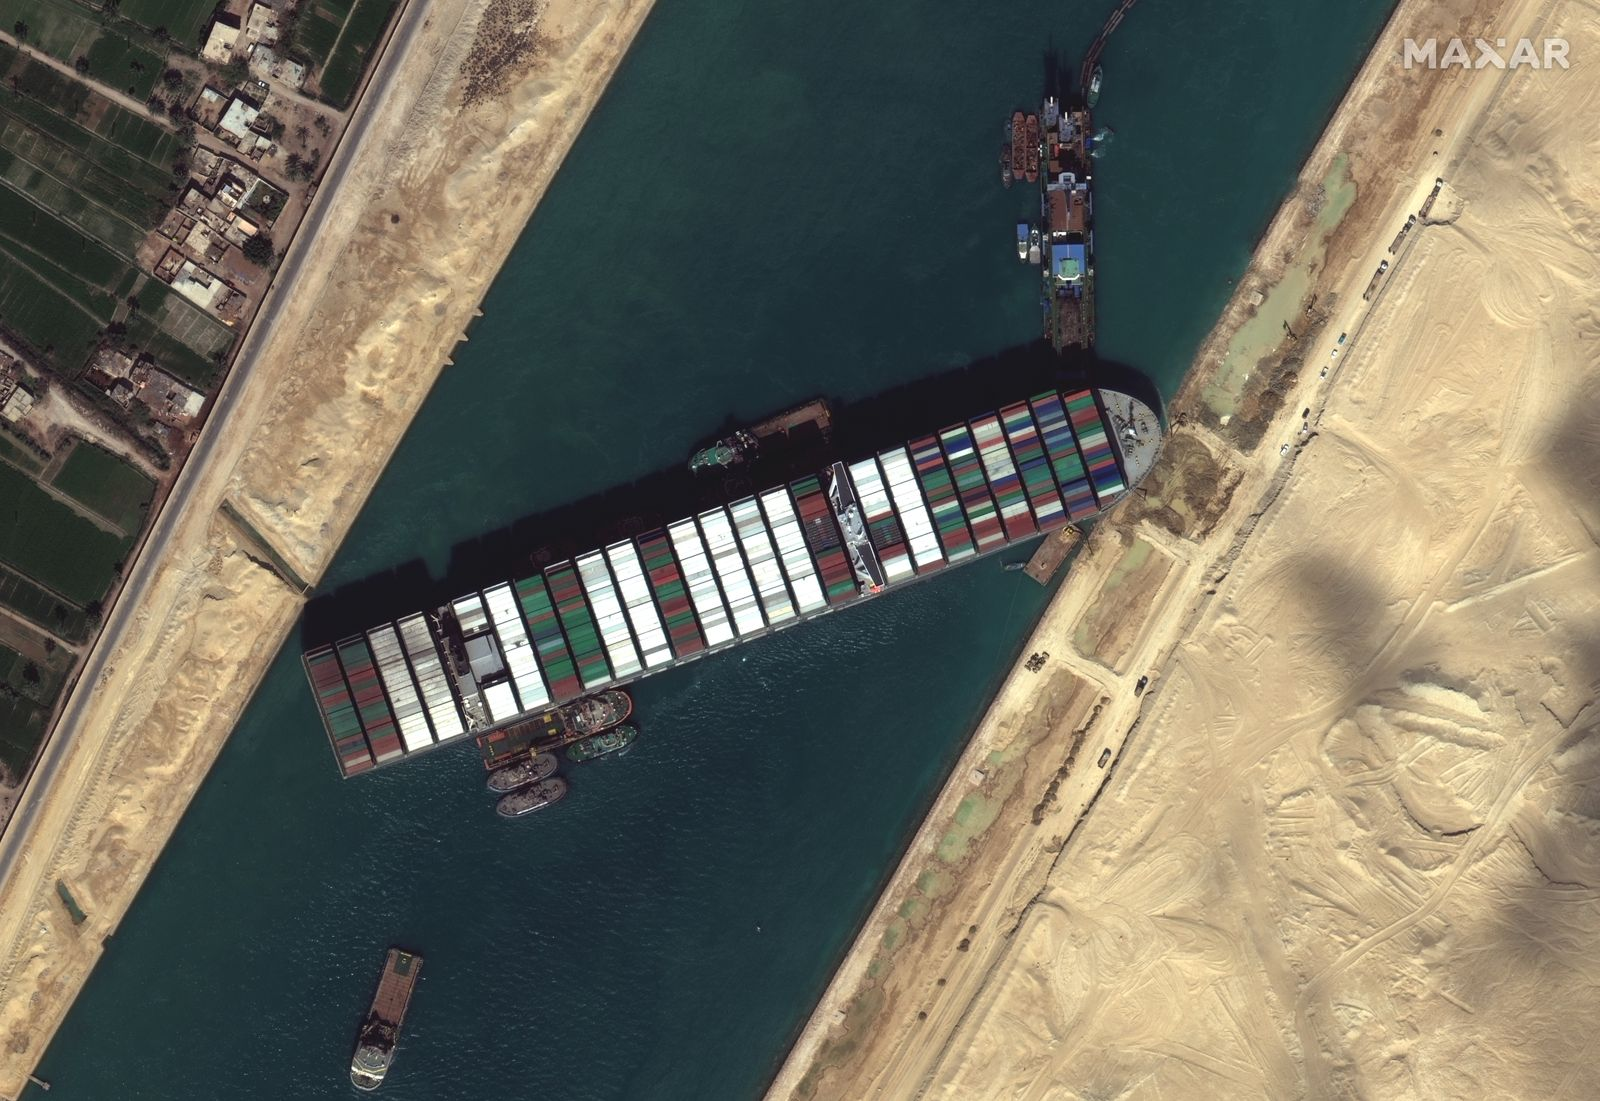 Suez Canal blocked as container ship runs aground